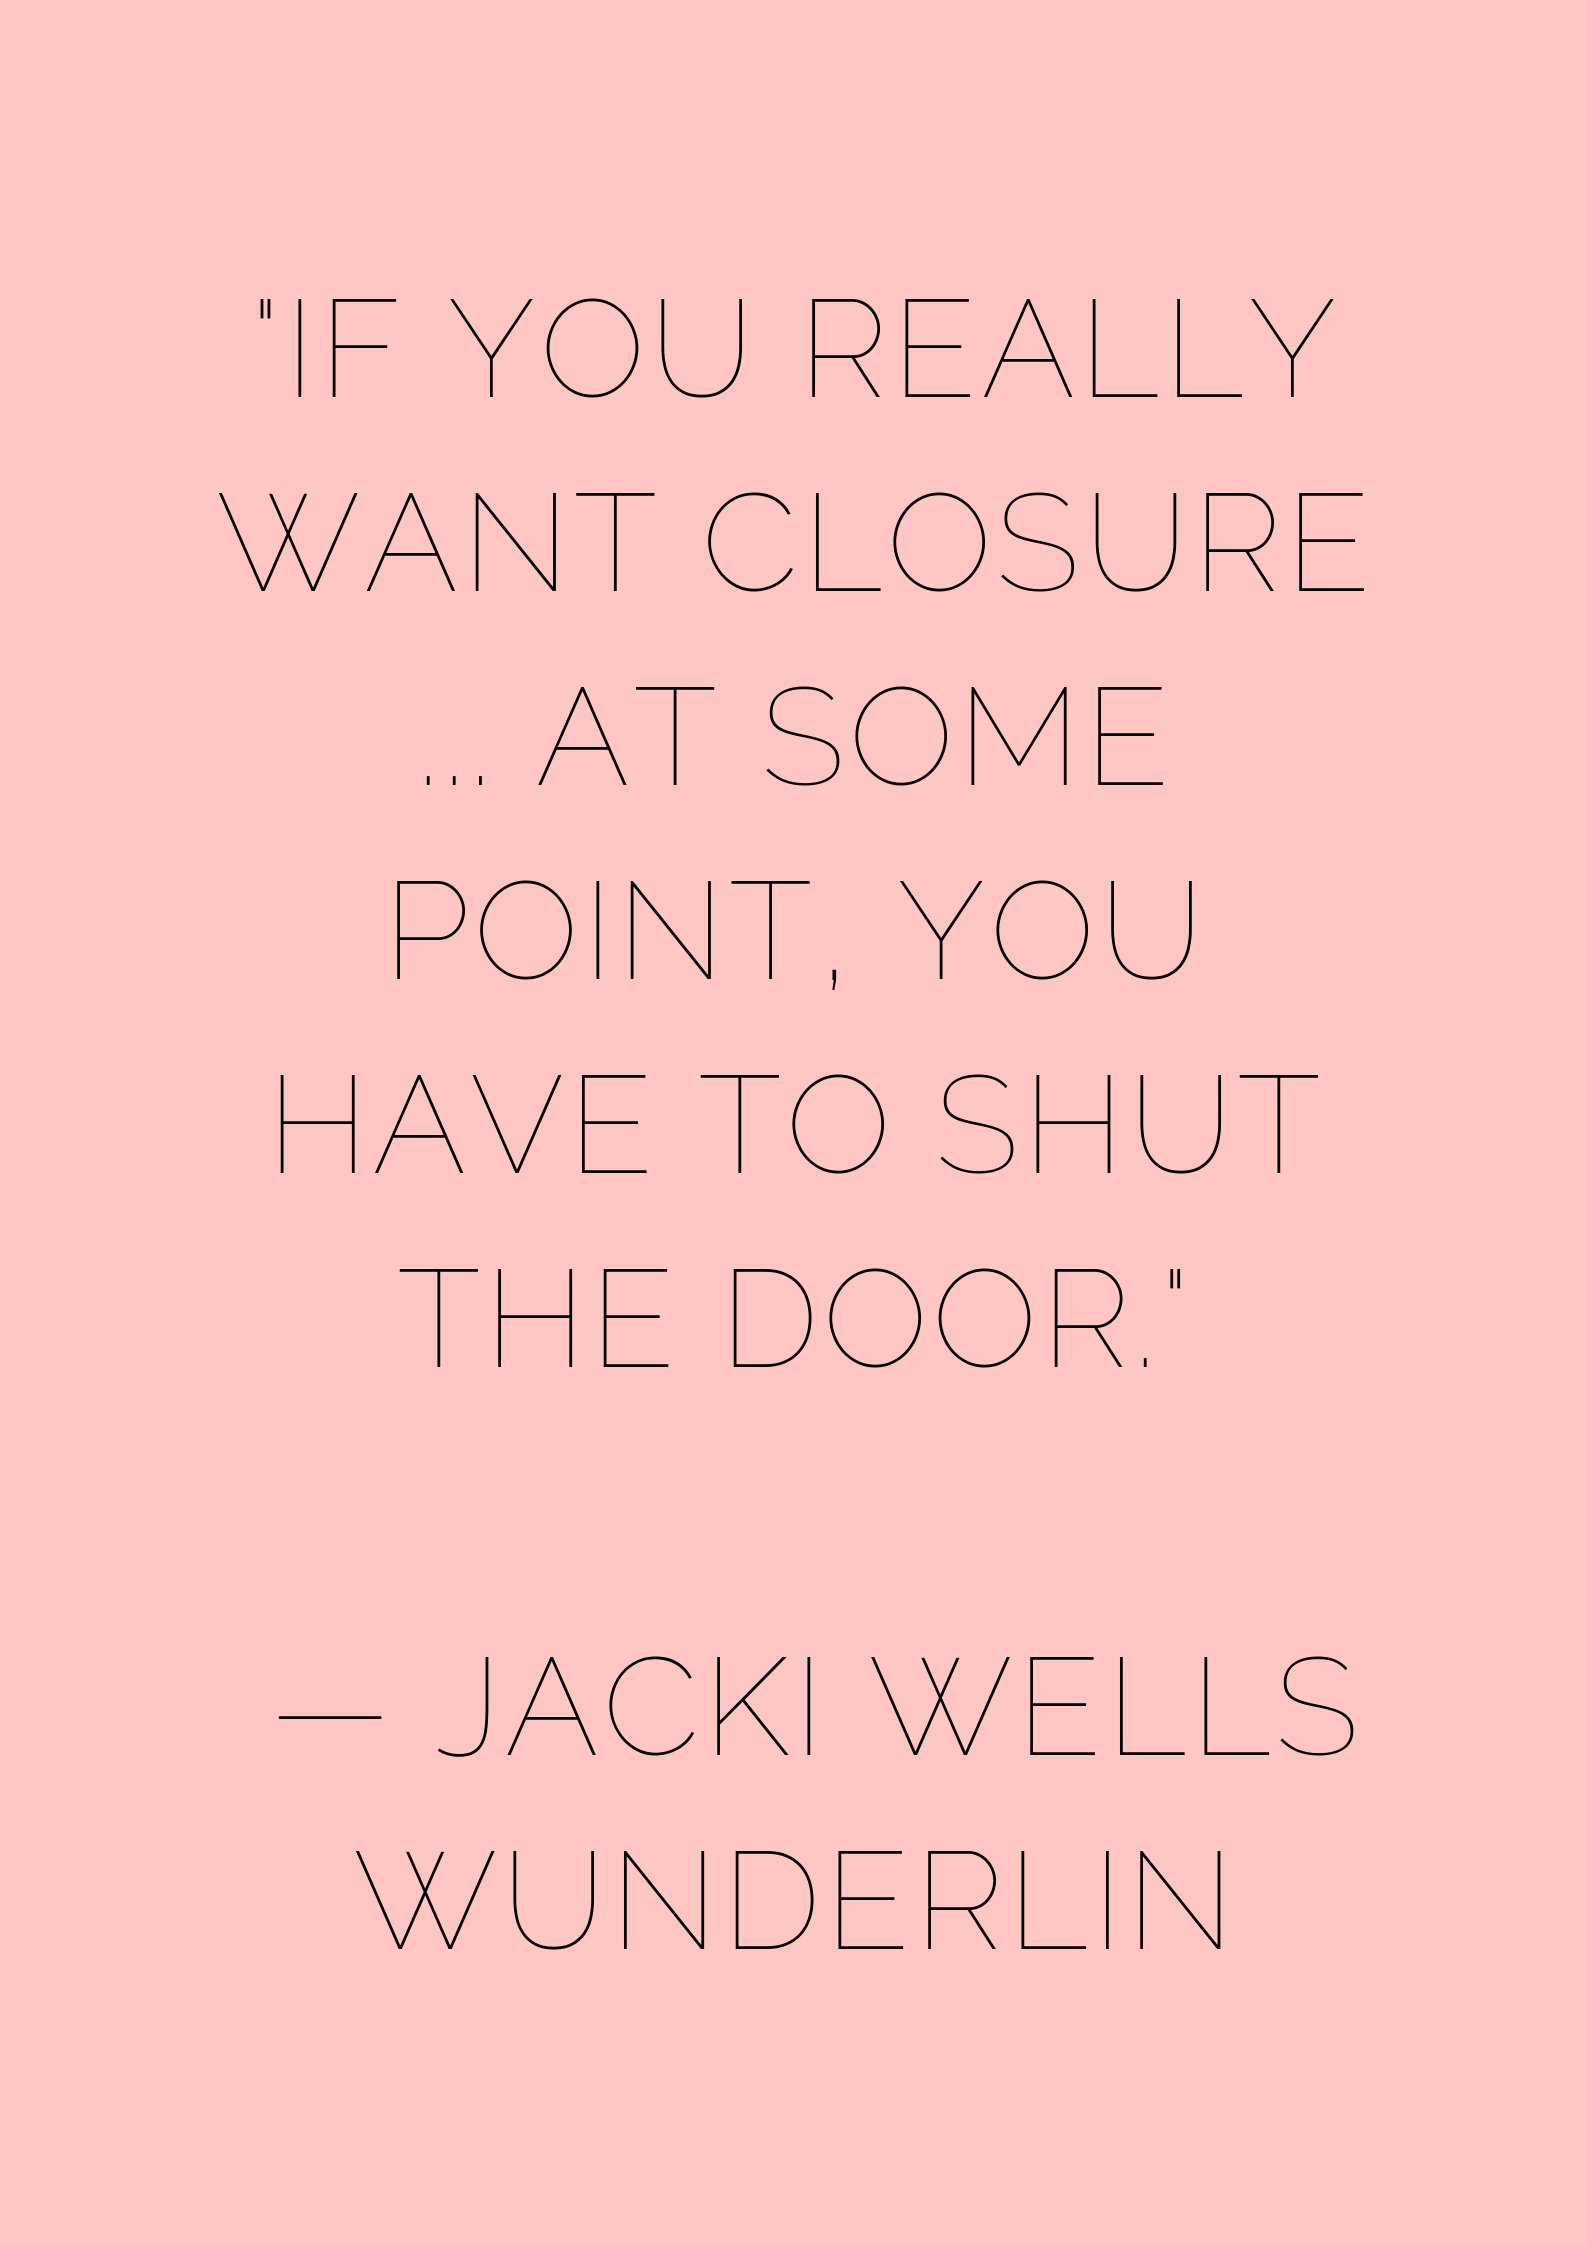 25 Break Up Quotes To Help You Move On From The Past ...